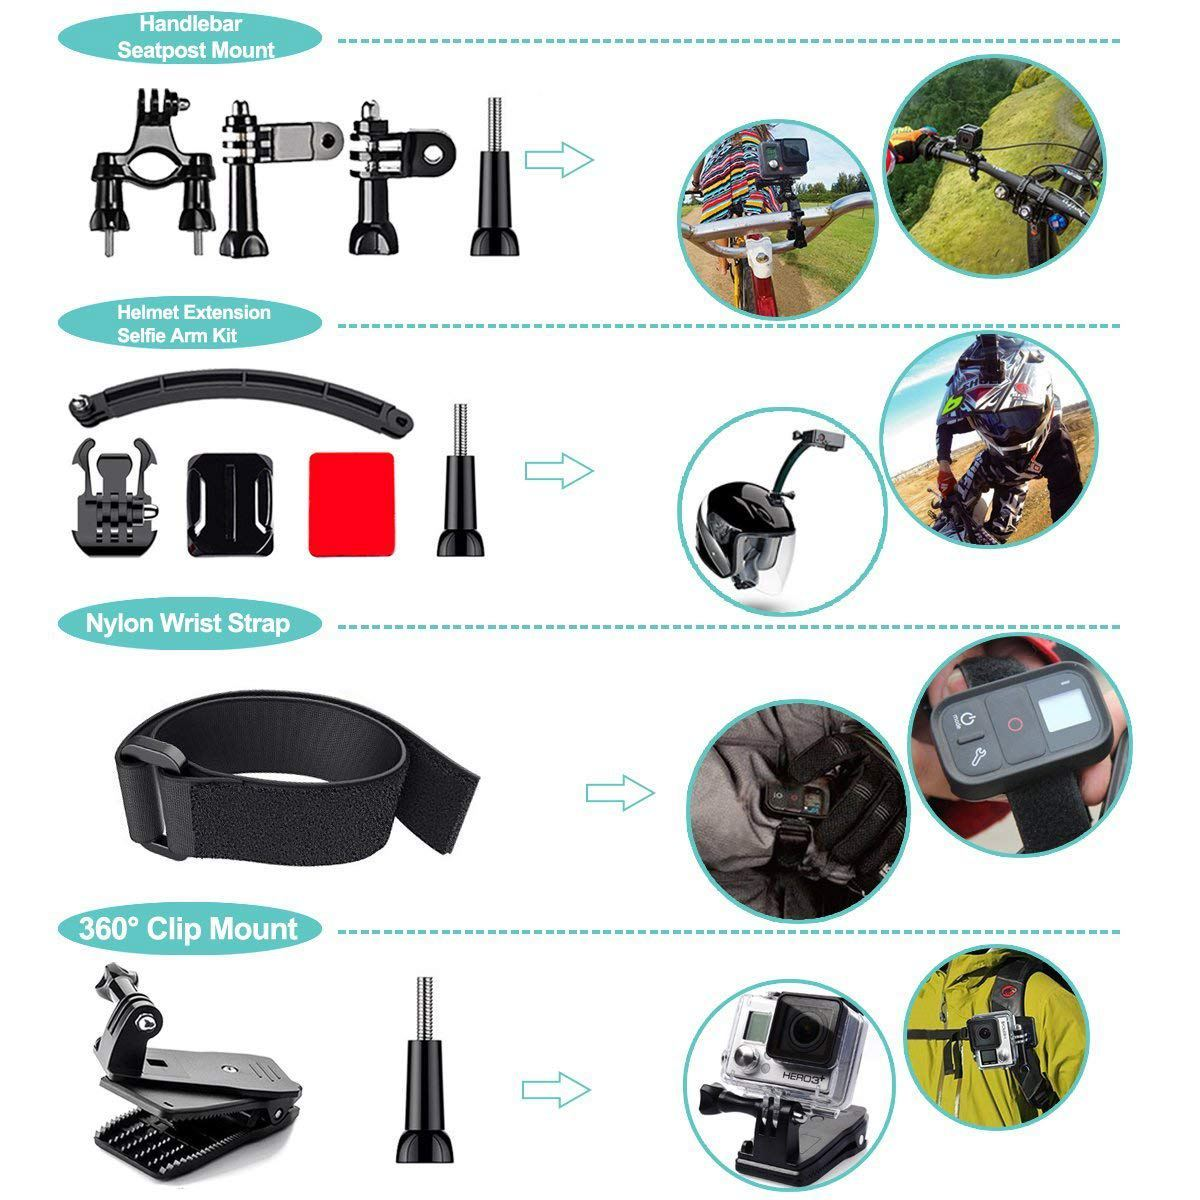 Ape Basics: 50-in-1 Action Camera Accessories Kit for GoPro Hero 8 7 6 5 4 3+ Max image